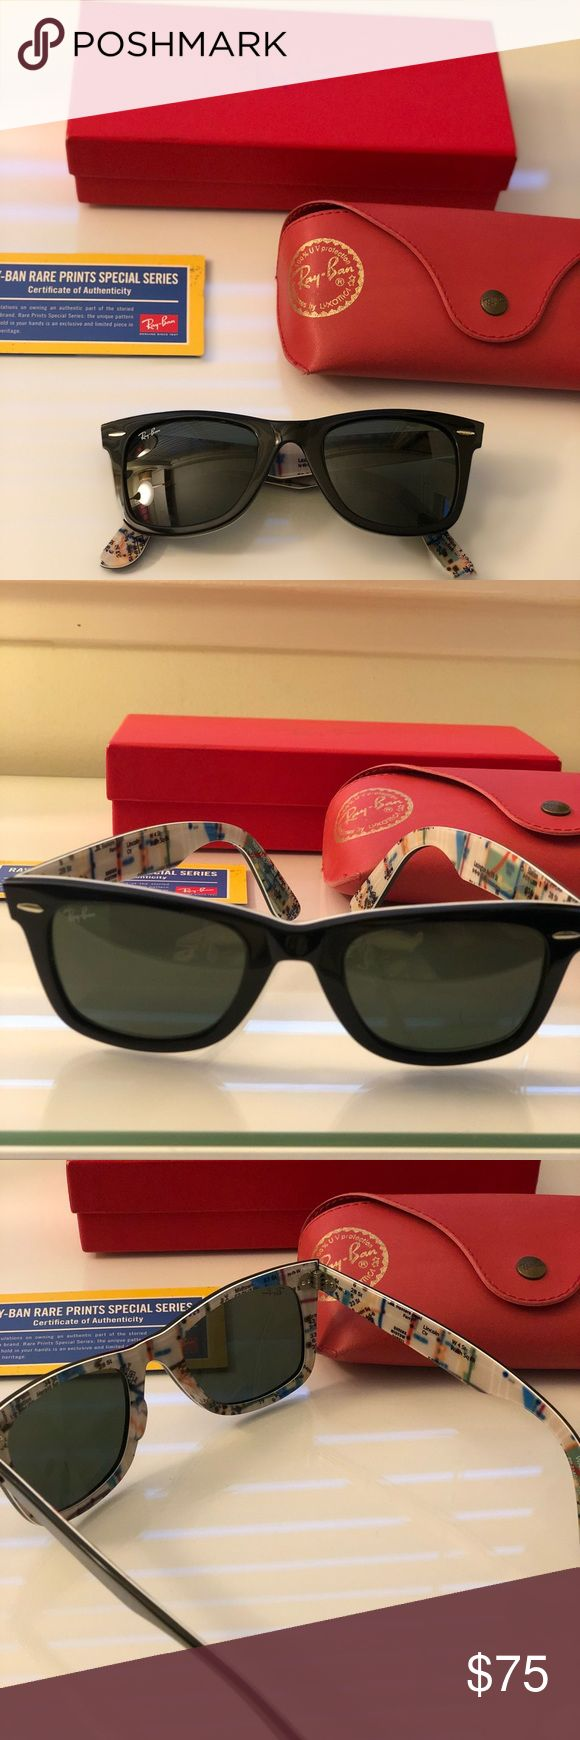 Ray Ban Original Wayfarer Special Series Ray Ban original Wayfarer Sunglasses, part of the rare prints special series. Exterior is classic black, interior is lined with print of the MTA subway map. Unique glasses in pristine condition.   Includes certificate of authenticity, case and comes in original collectors box.  Style is classic Wayfarer RB2140 #2 MTA Ray-Ban Accessories Sunglasses